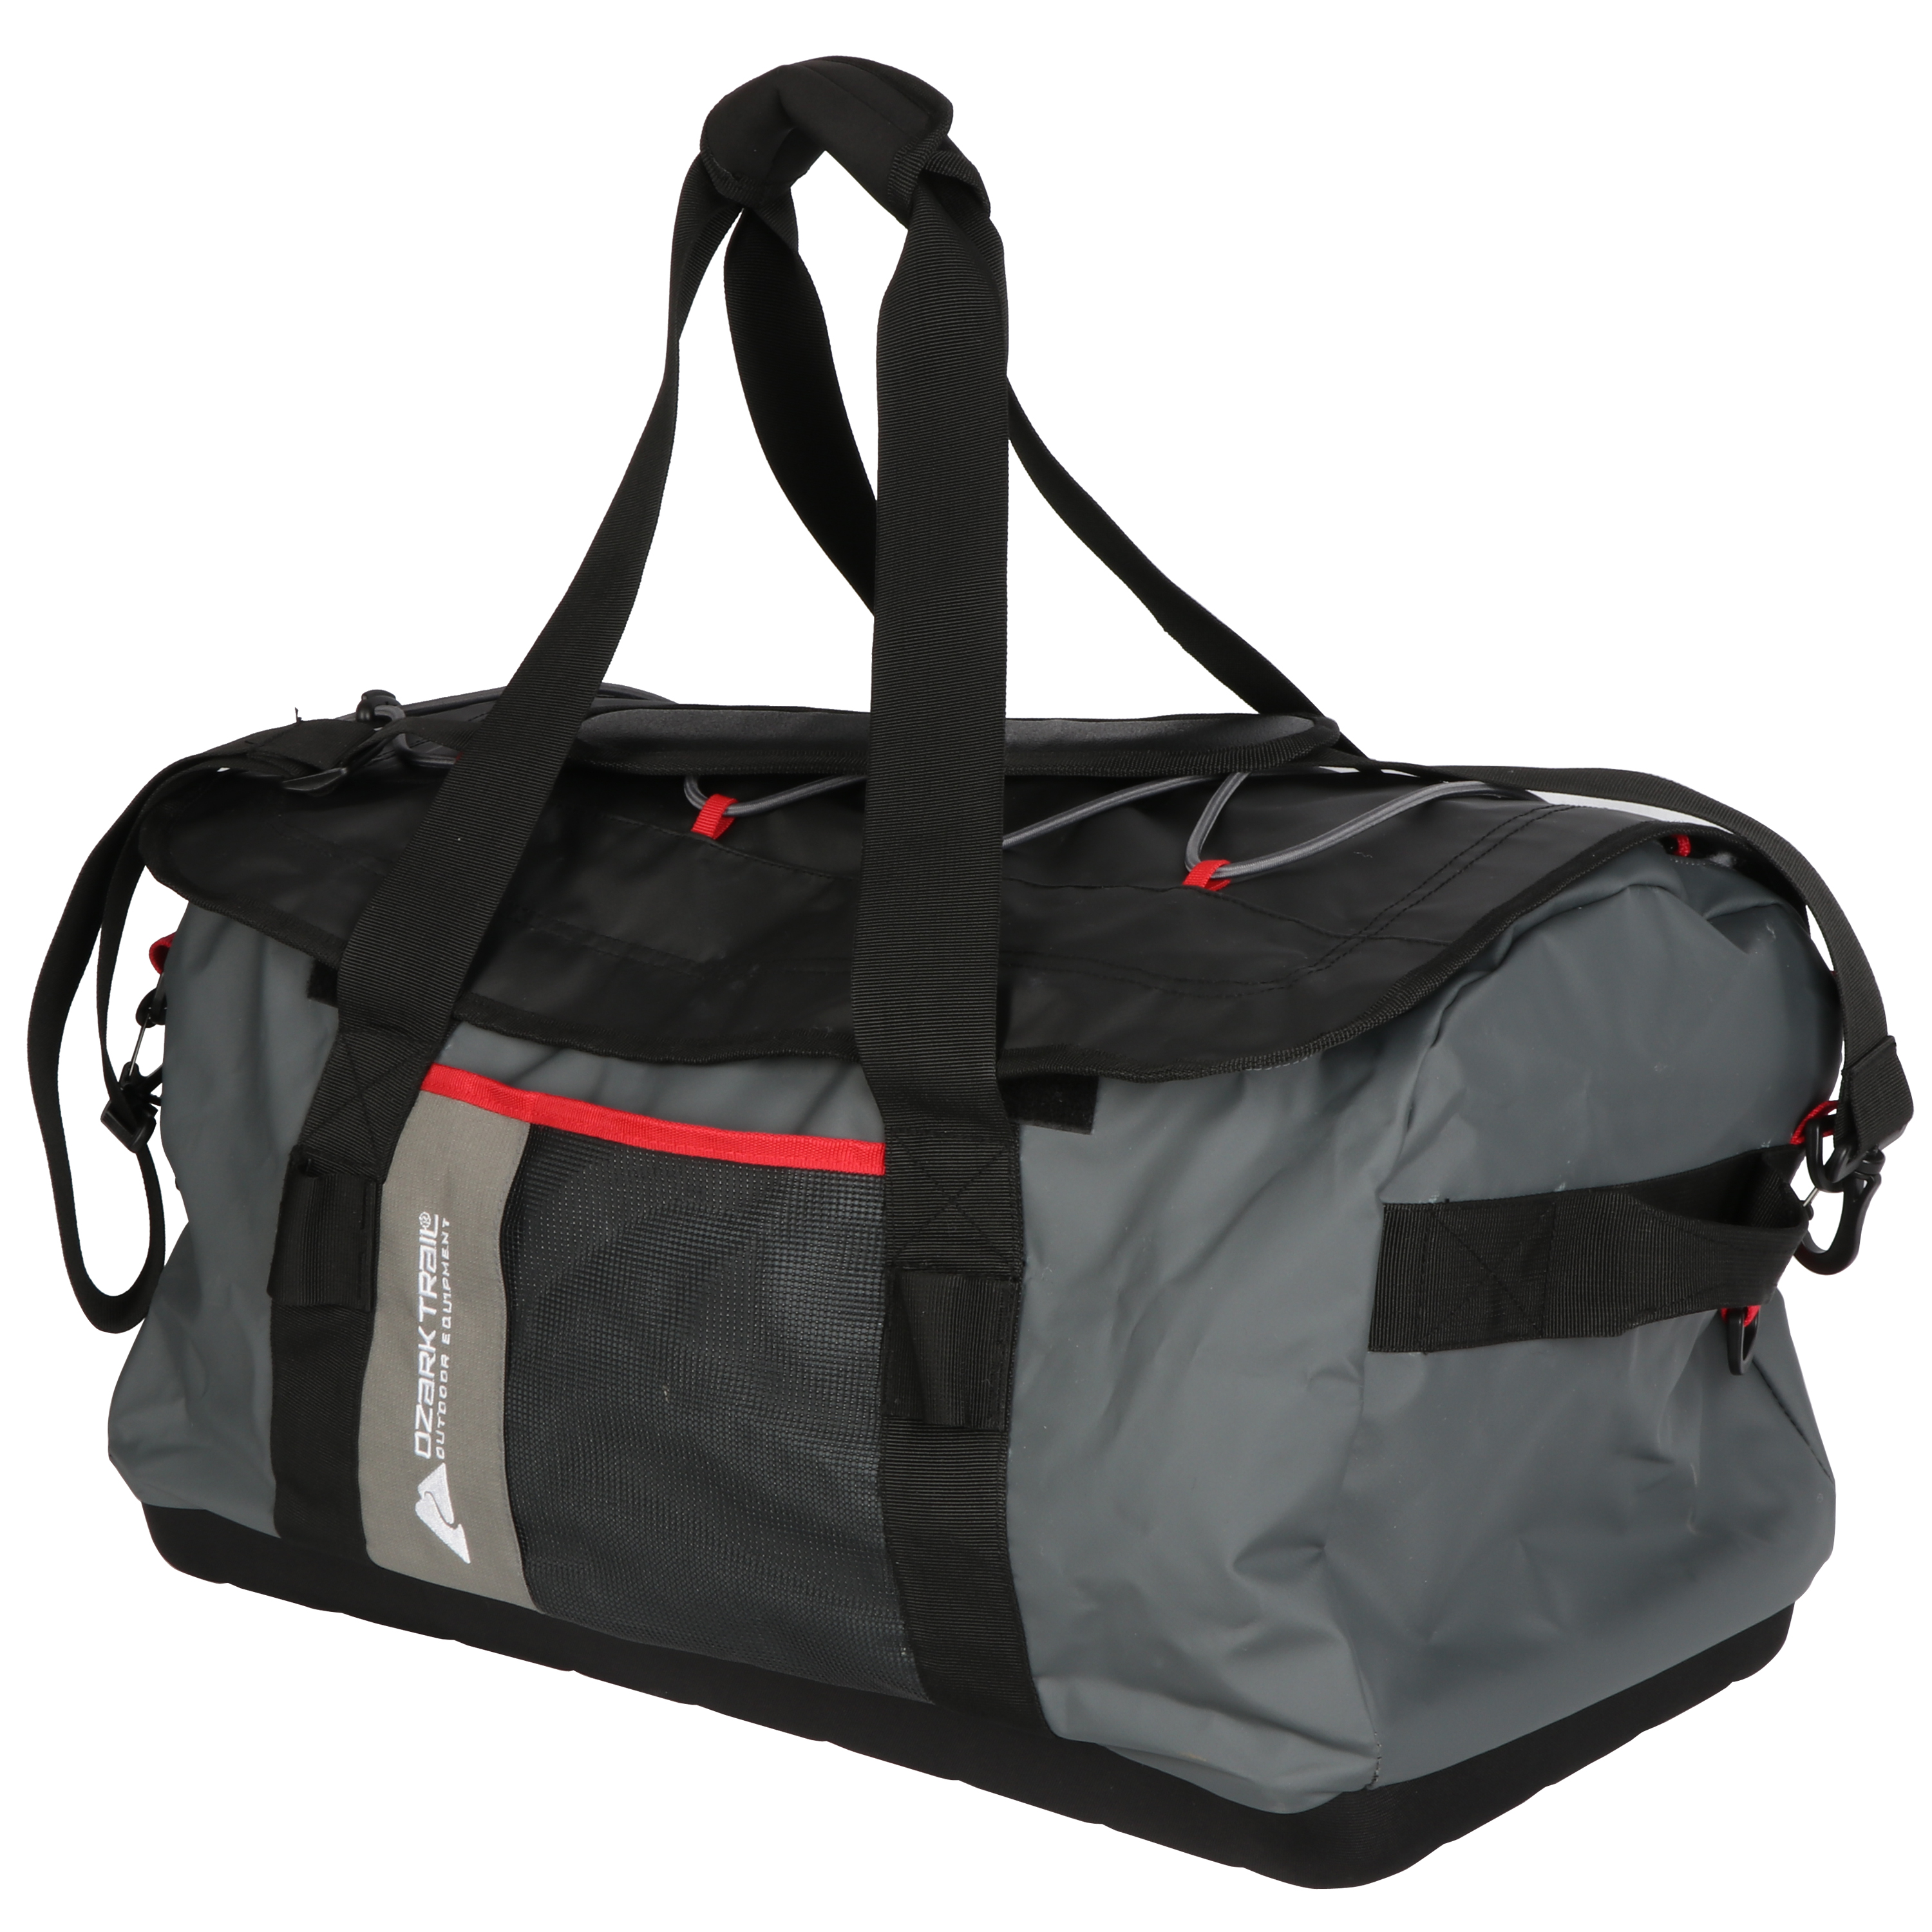 Ozark Trail Fishing Boat Bag